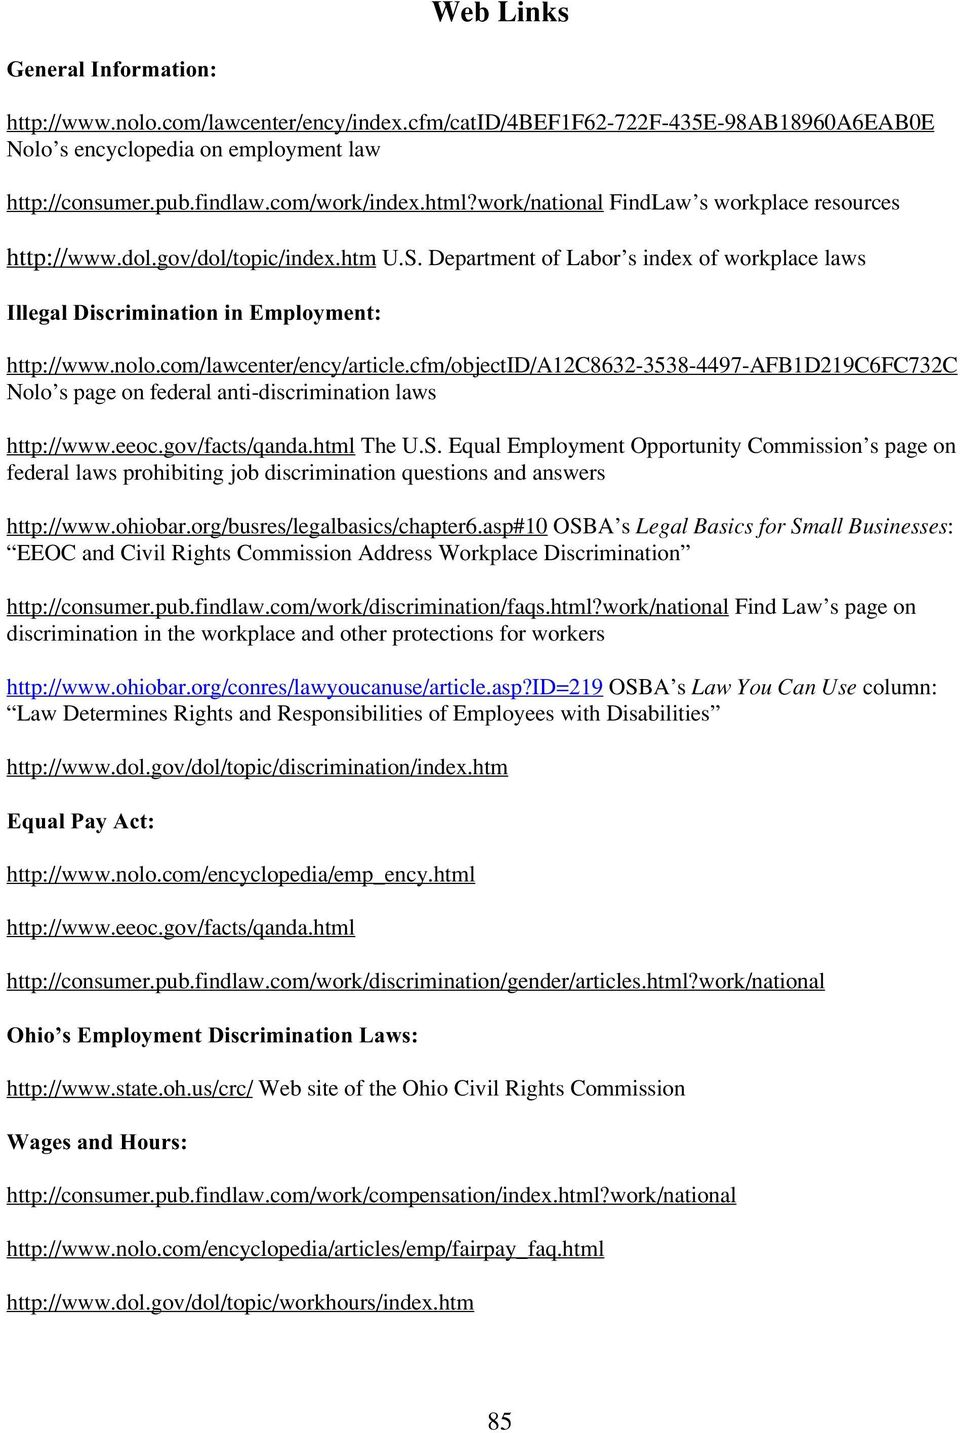 com/lawcenter/ency/article.cfm/objectid/a12c8632-3538-4497-afb1d219c6fc732c Nolo s page on federal anti-discrimination laws http://www.eeoc.gov/facts/qanda.html The U.S.